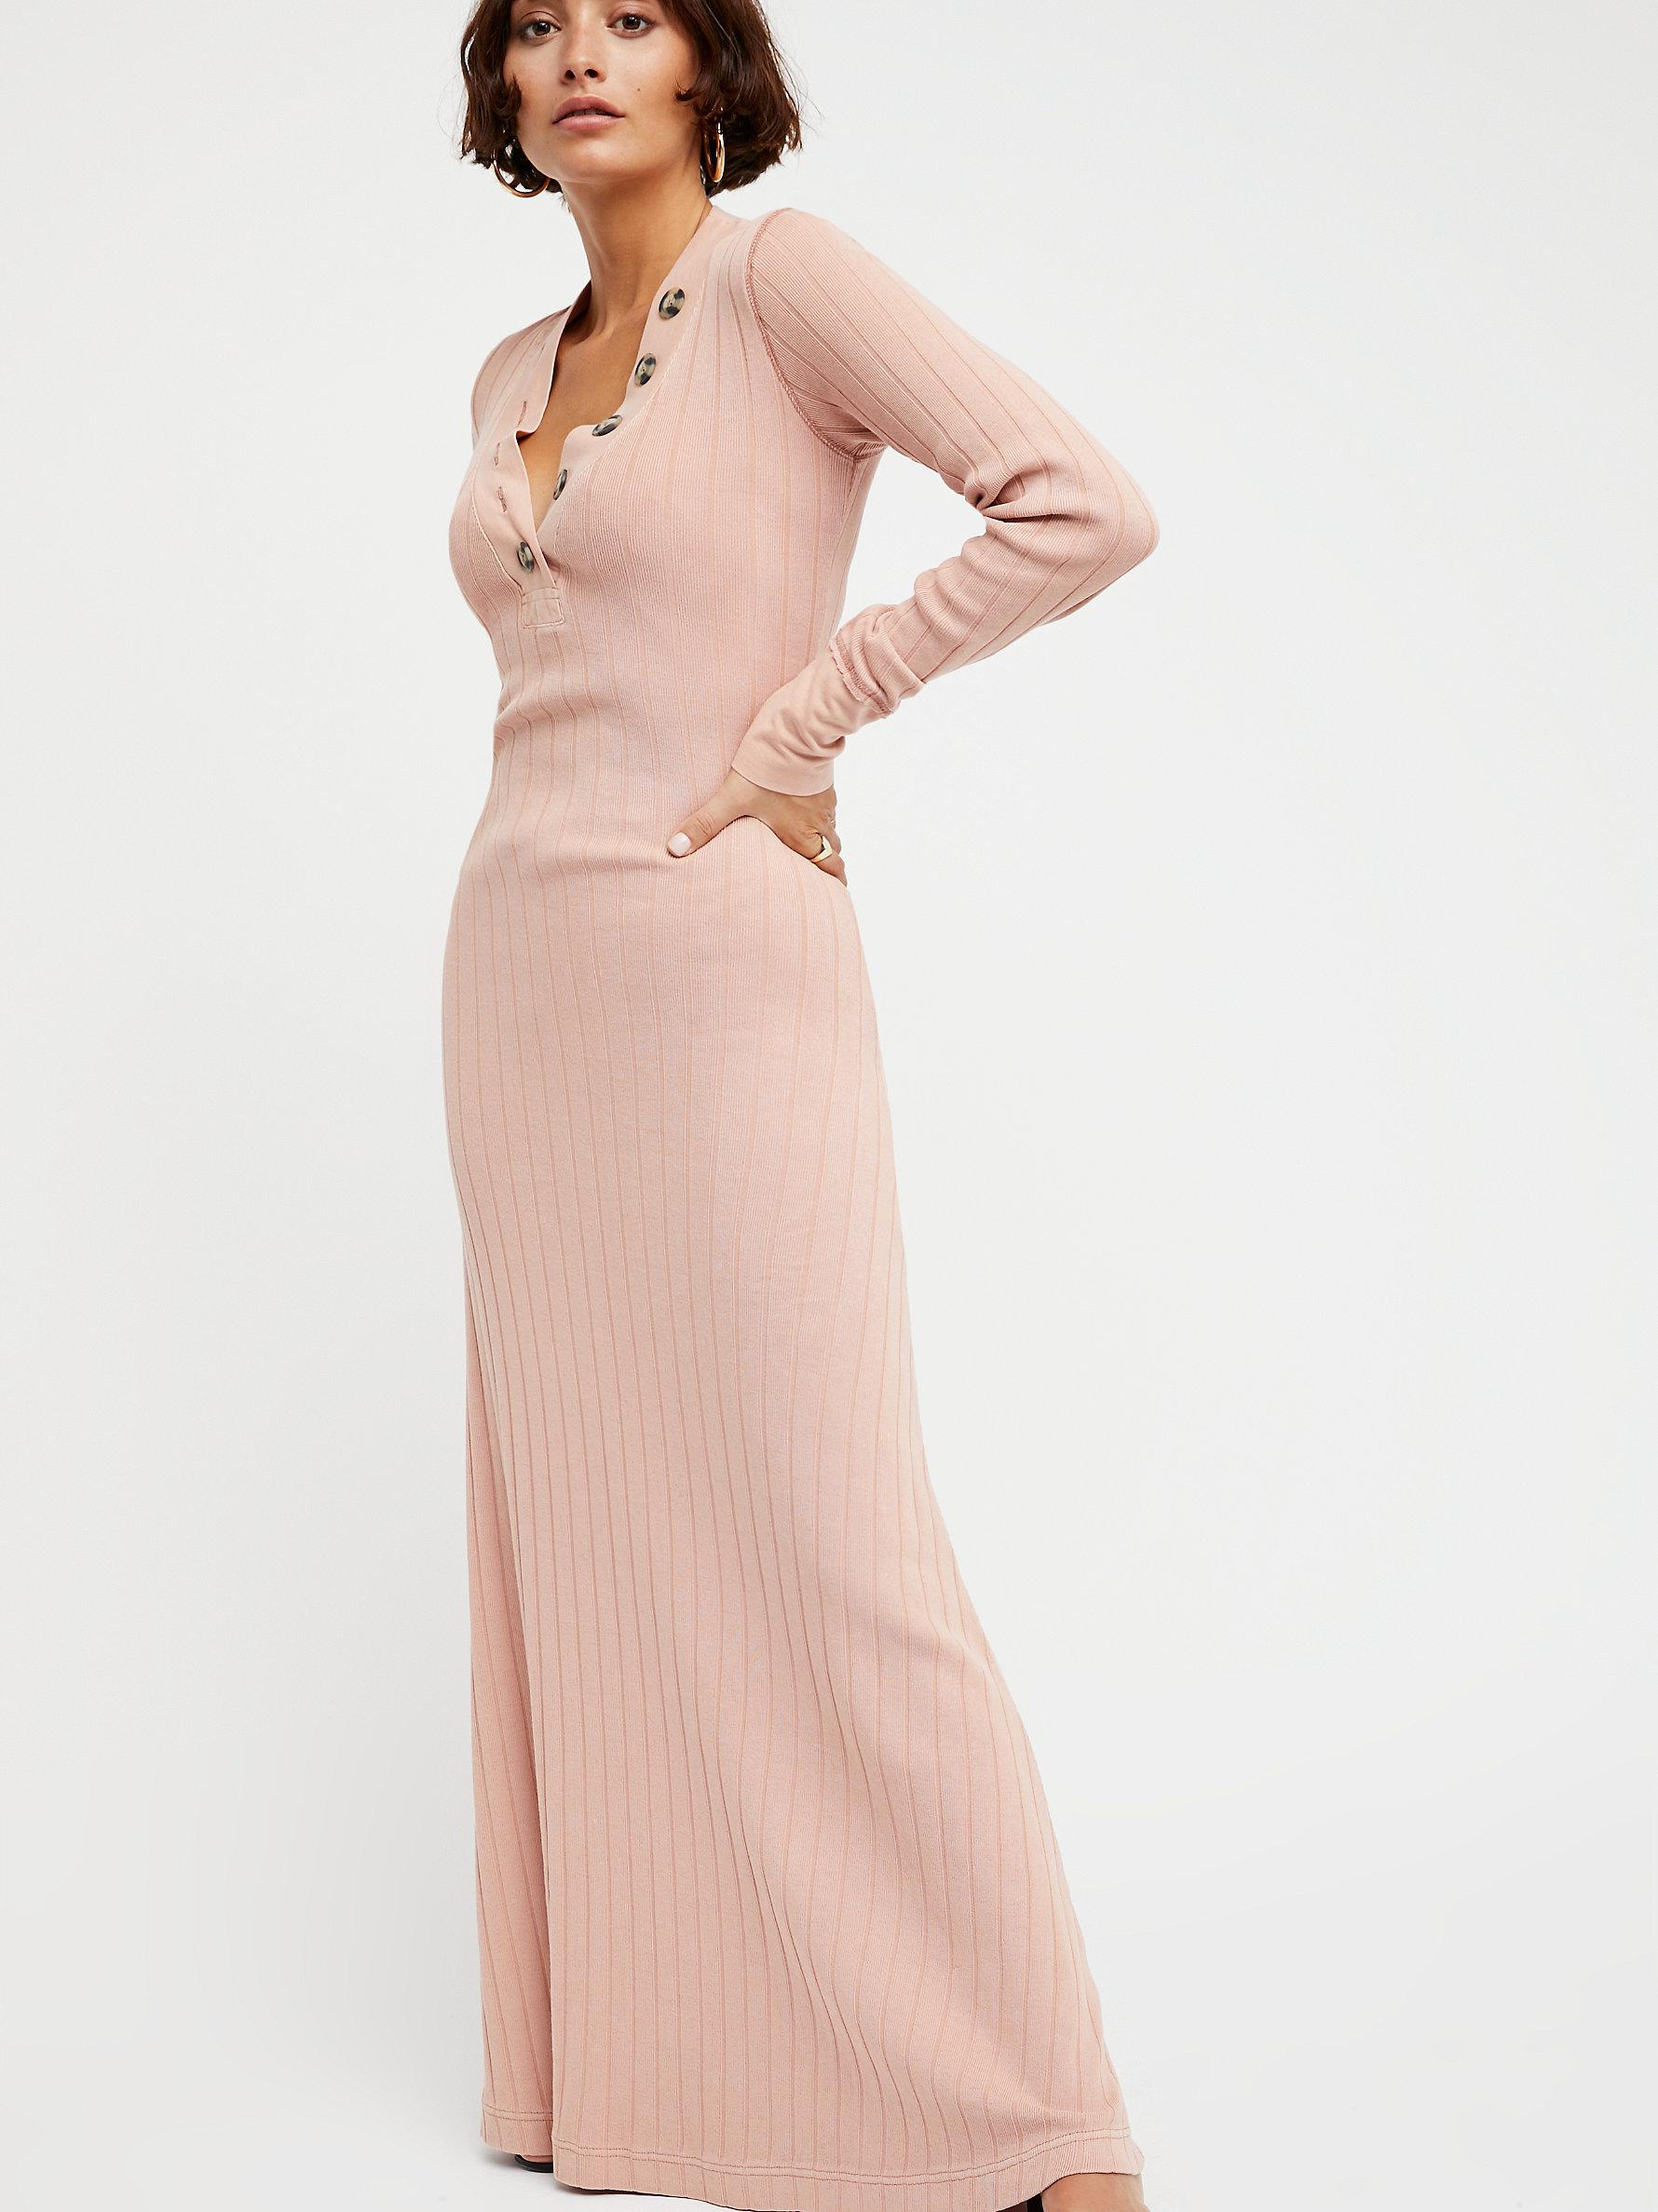 06c1f36ed19a Free People Sunflower Maxi Dress in Pink - Lyst